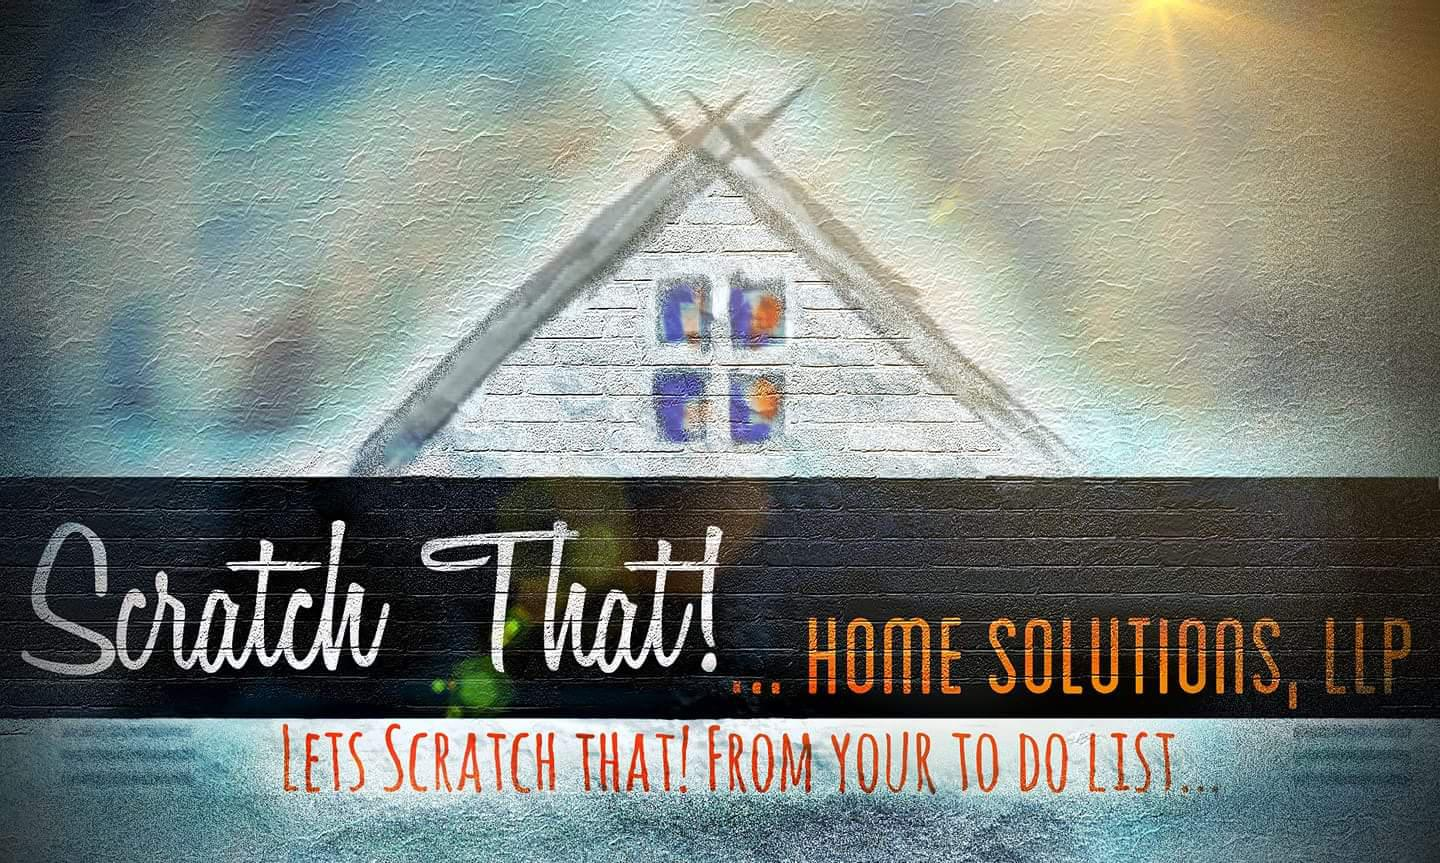 'Scratch That!' Home Solutions, LLP image 3